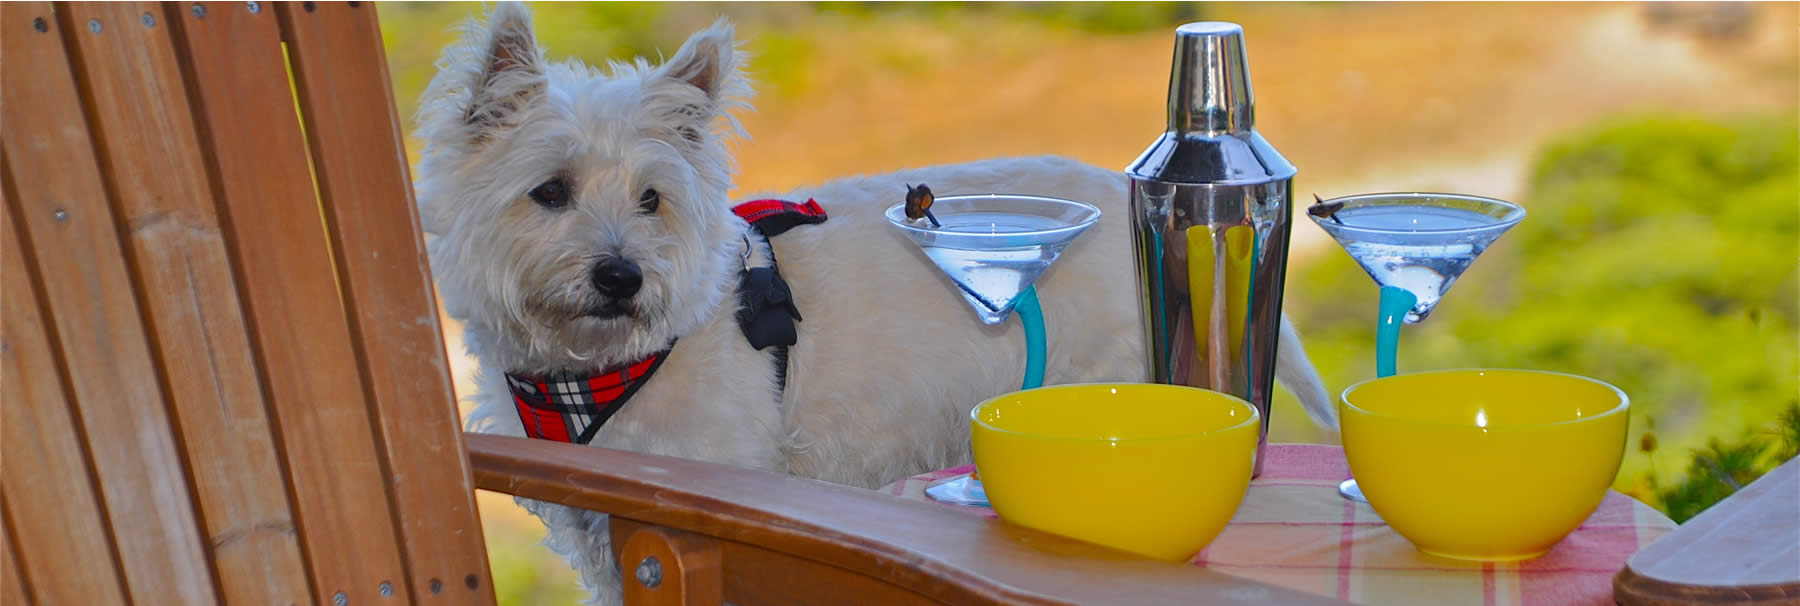 pet friendly hull hotels - dog with drinks